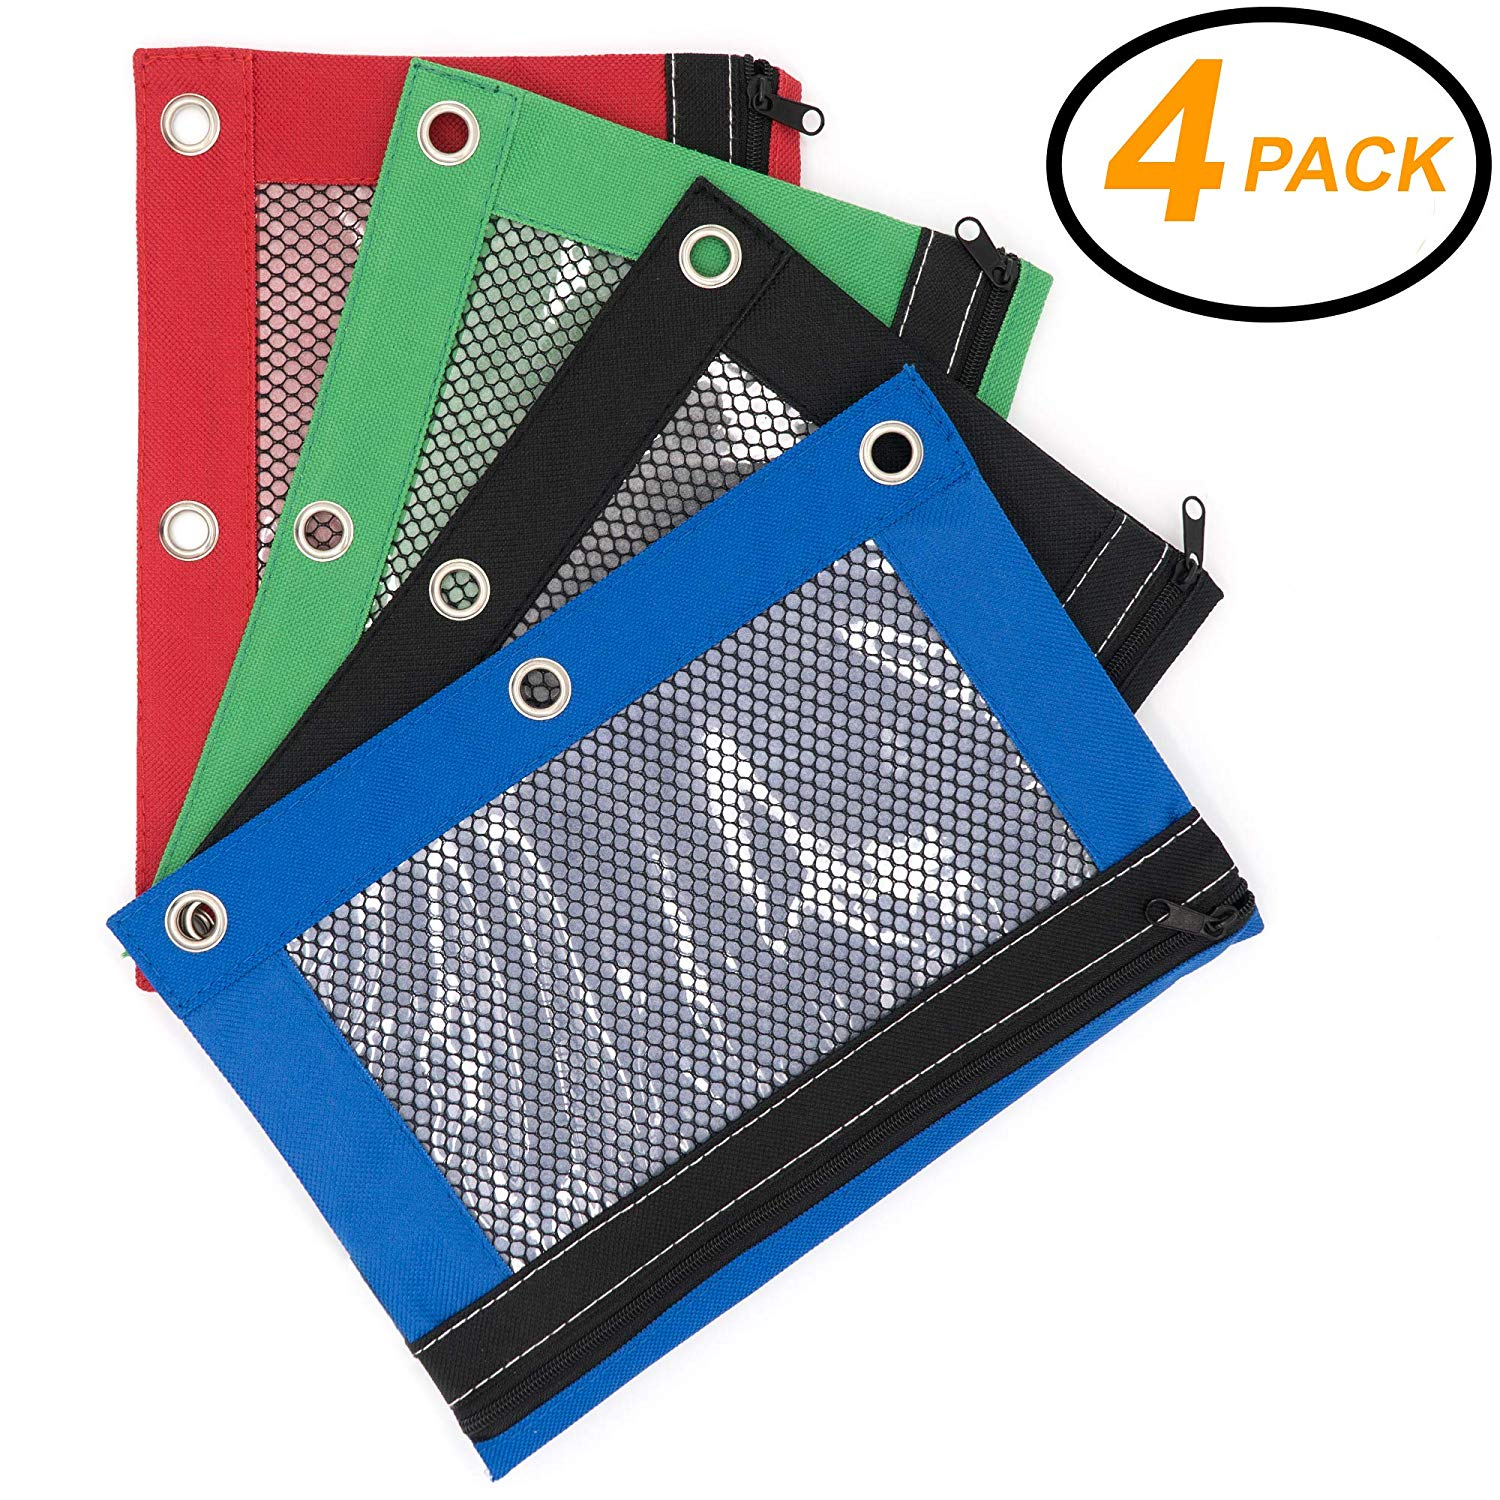 Emraw 4 Pieces Ring Binder Pouch - Pencil Bag with Holes 3-Ring Zipper Pouches with Mesh Window Pencil Pouches for Binders, Zippered Pencil Pouch Storage Pouch mesh Pencil case (4-Pack)